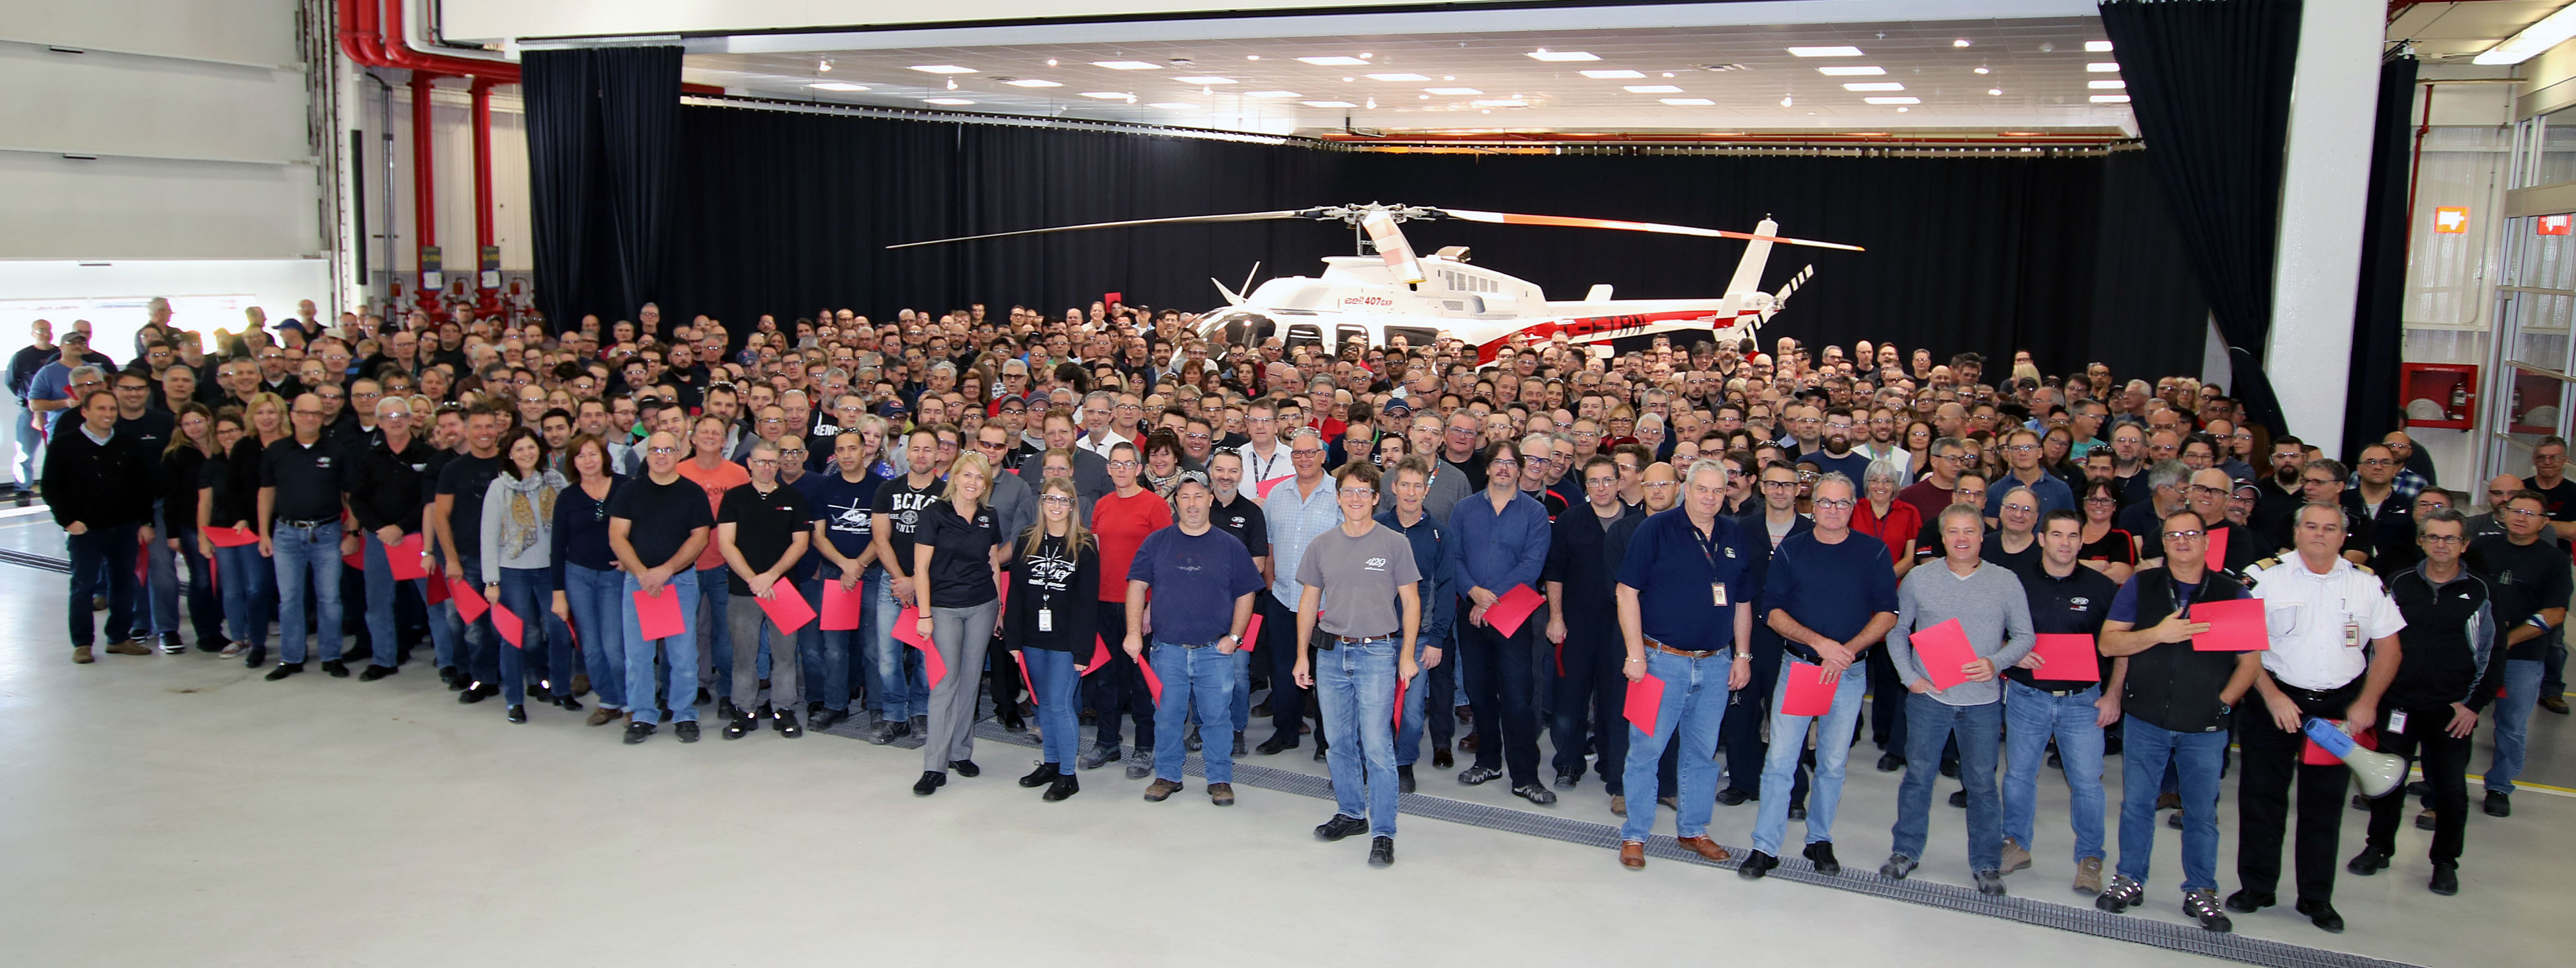 All Bell Helicopter Mirabel employees gathered around the 5,000th aircraft in the facility's delivery center for a special ceremony.